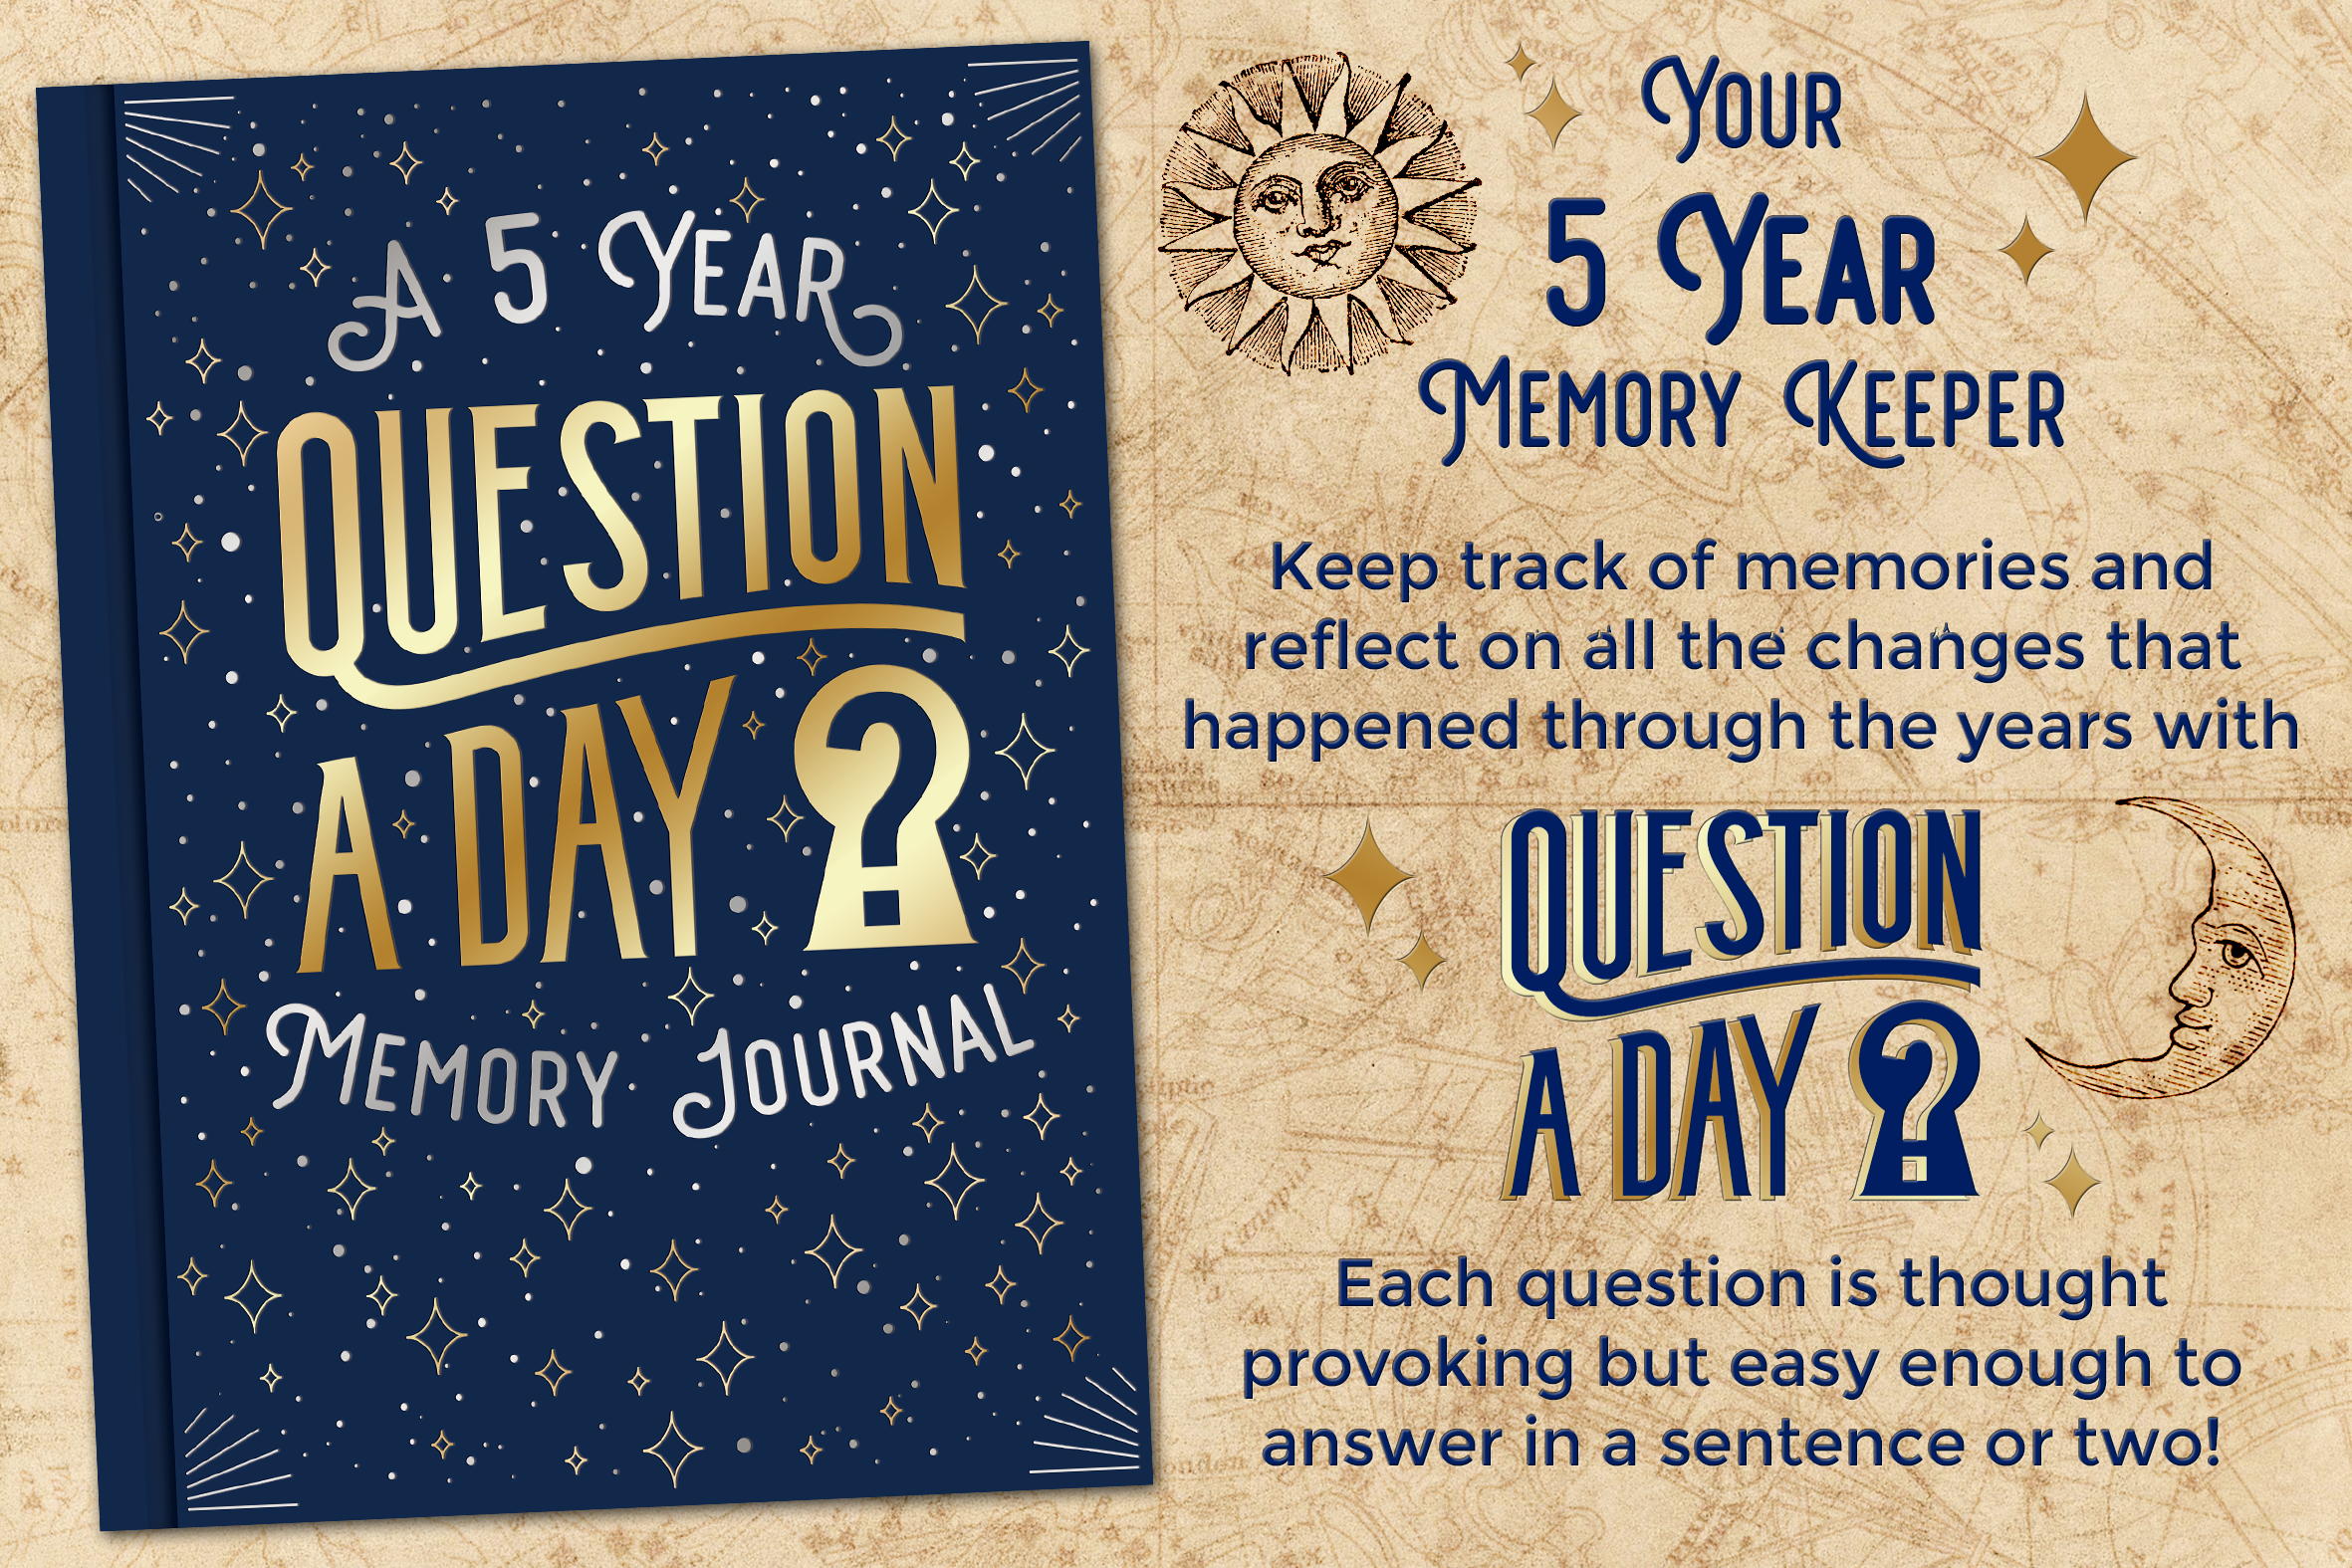 Question A Day Graphic